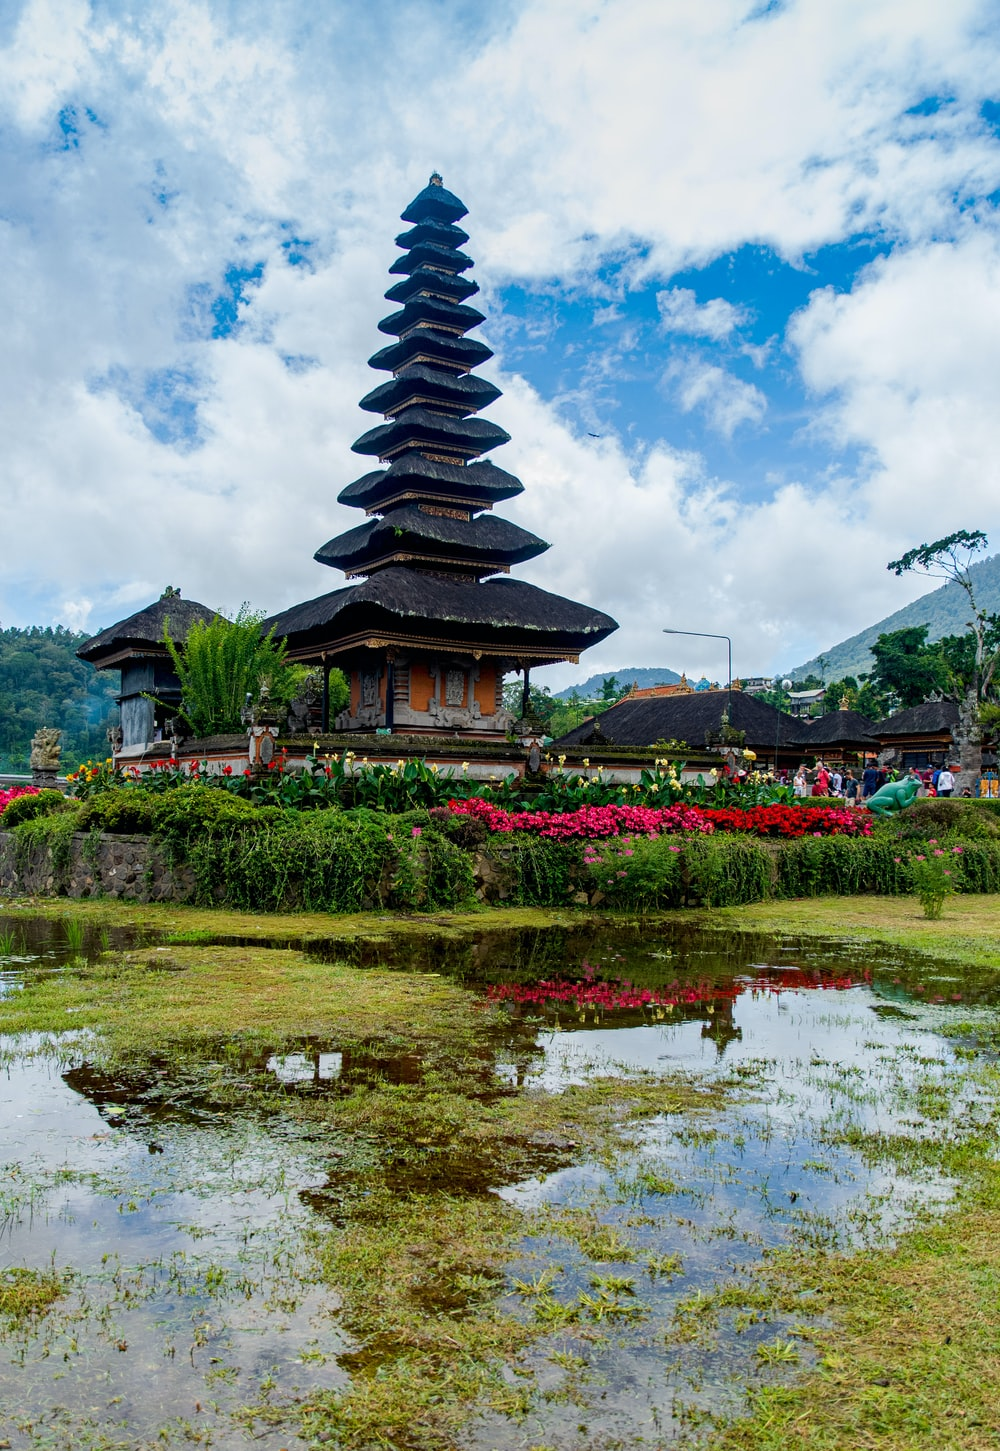 black and white pagoda temple near green grass field under blue and white cloudy sky during